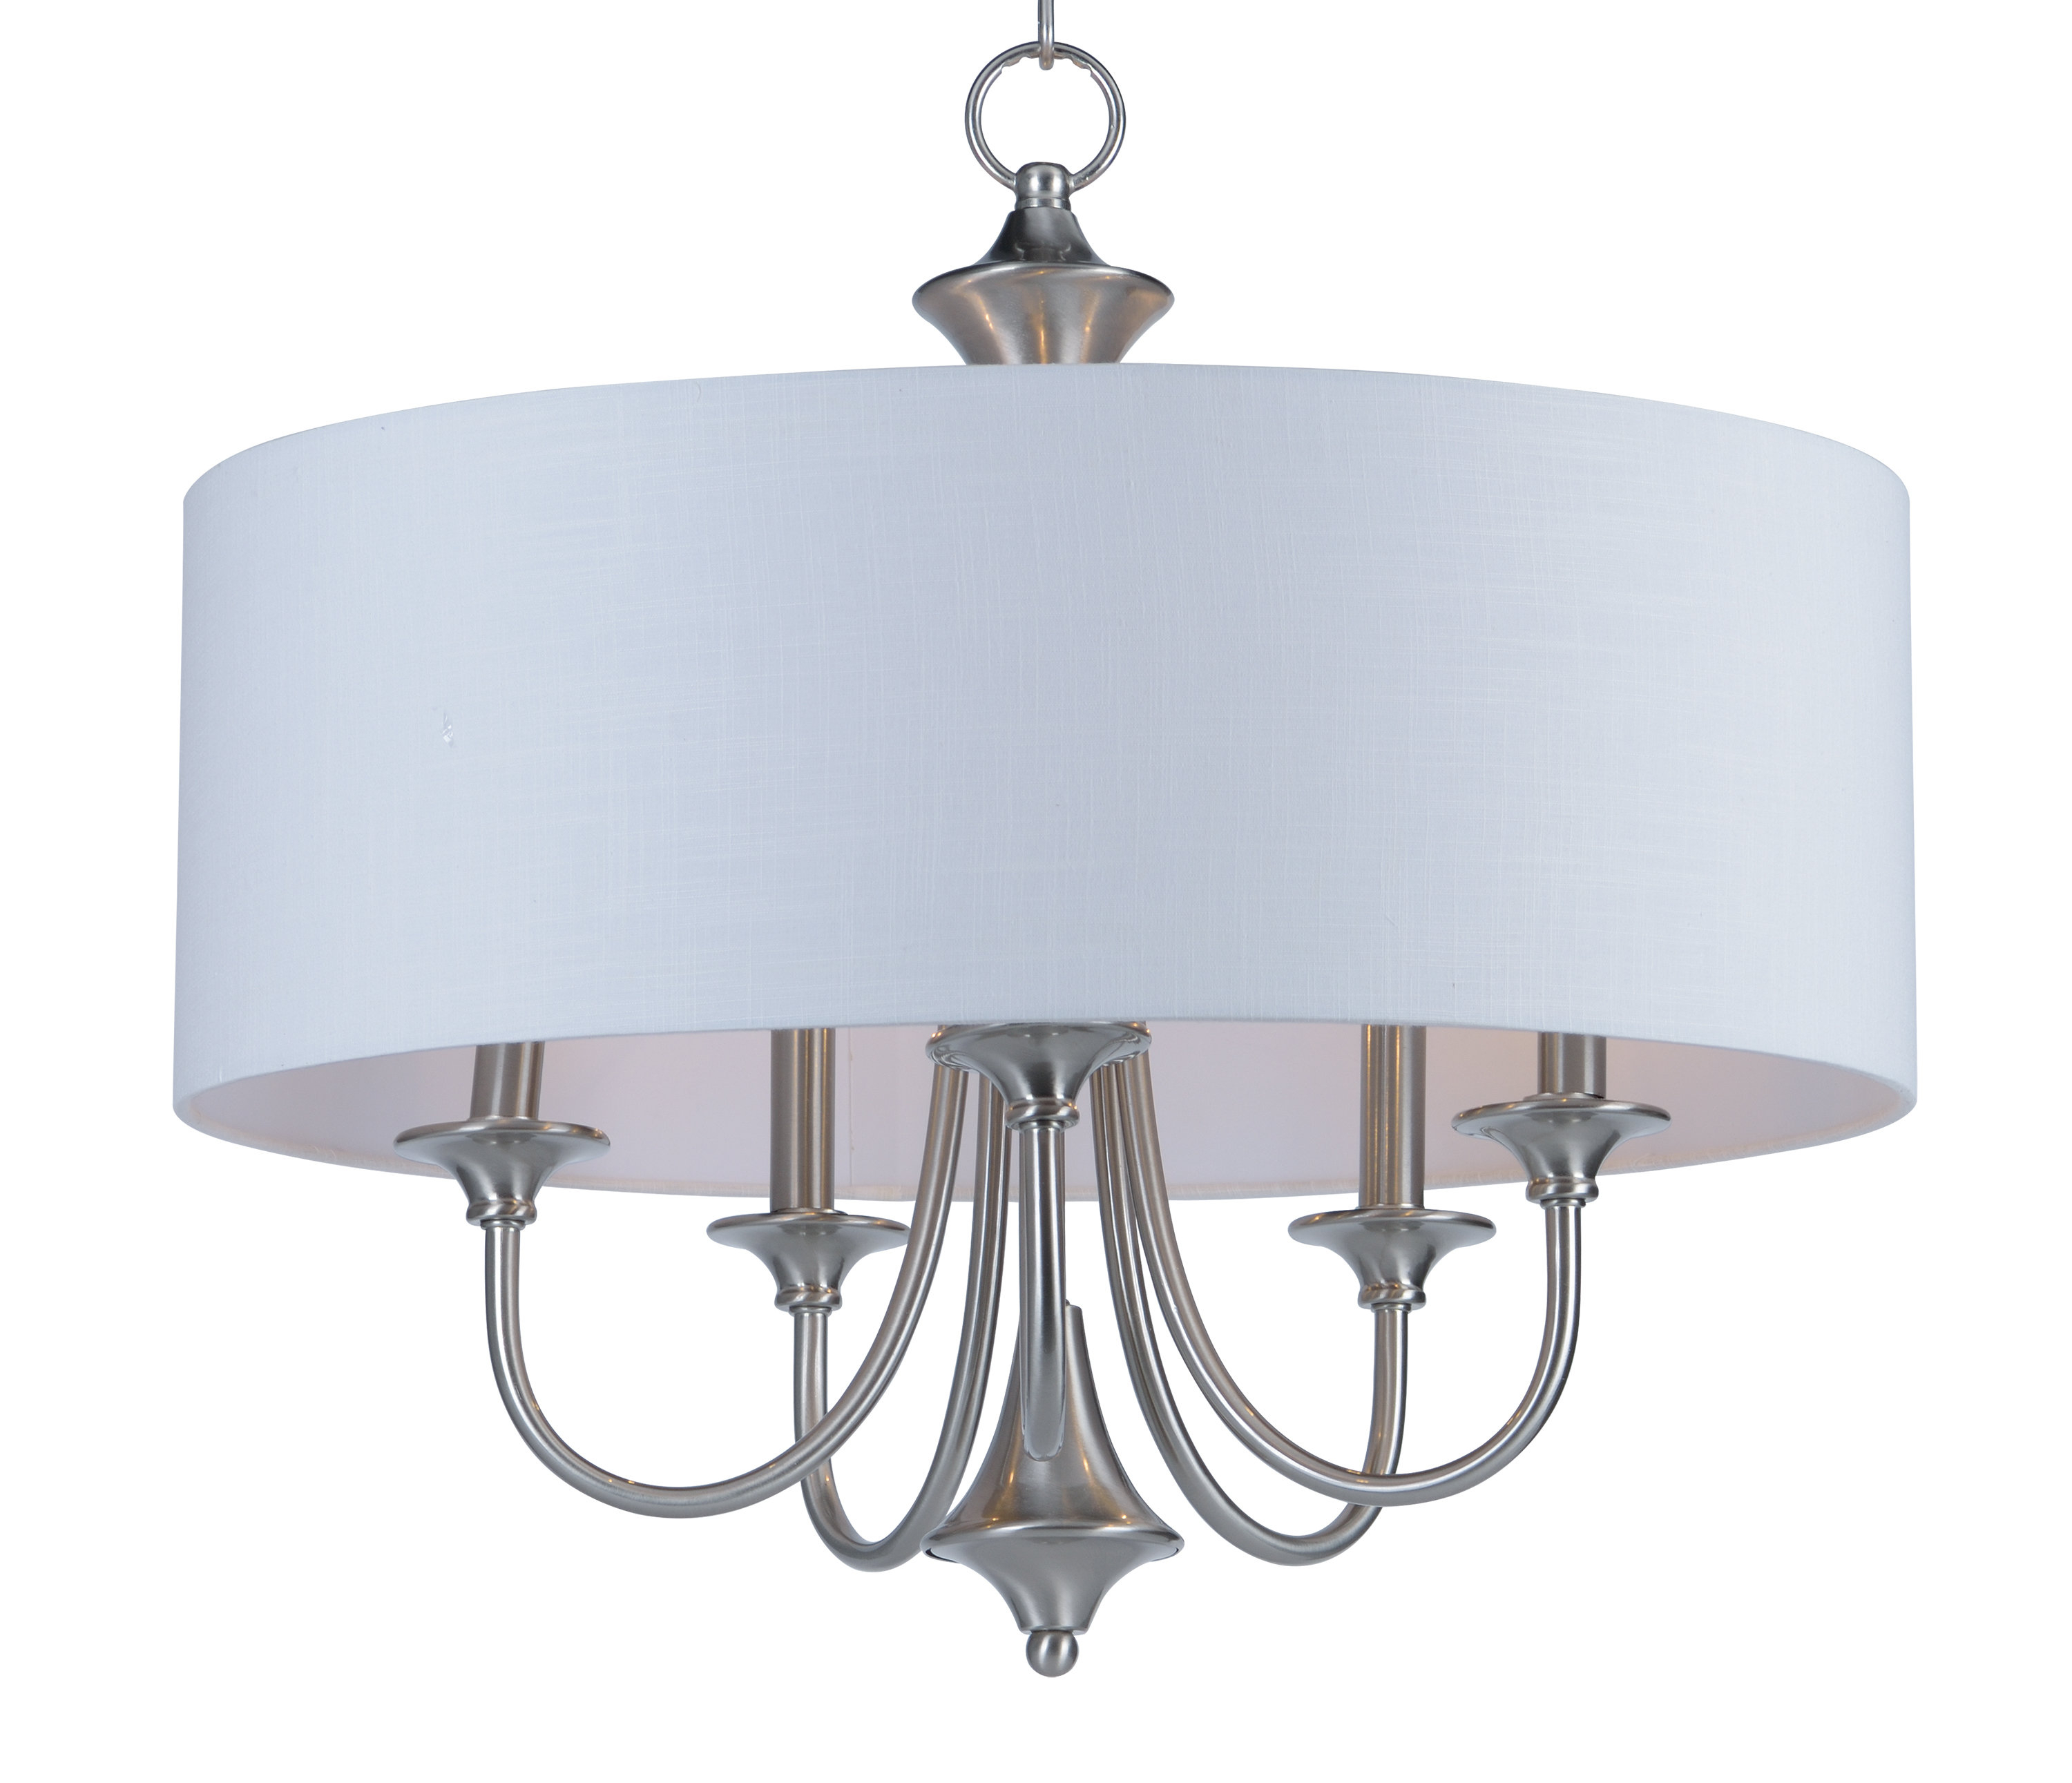 Wadlington 5 Light Drum Chandelier In Wadlington 6 Light Single Cylinder Pendants (View 7 of 30)